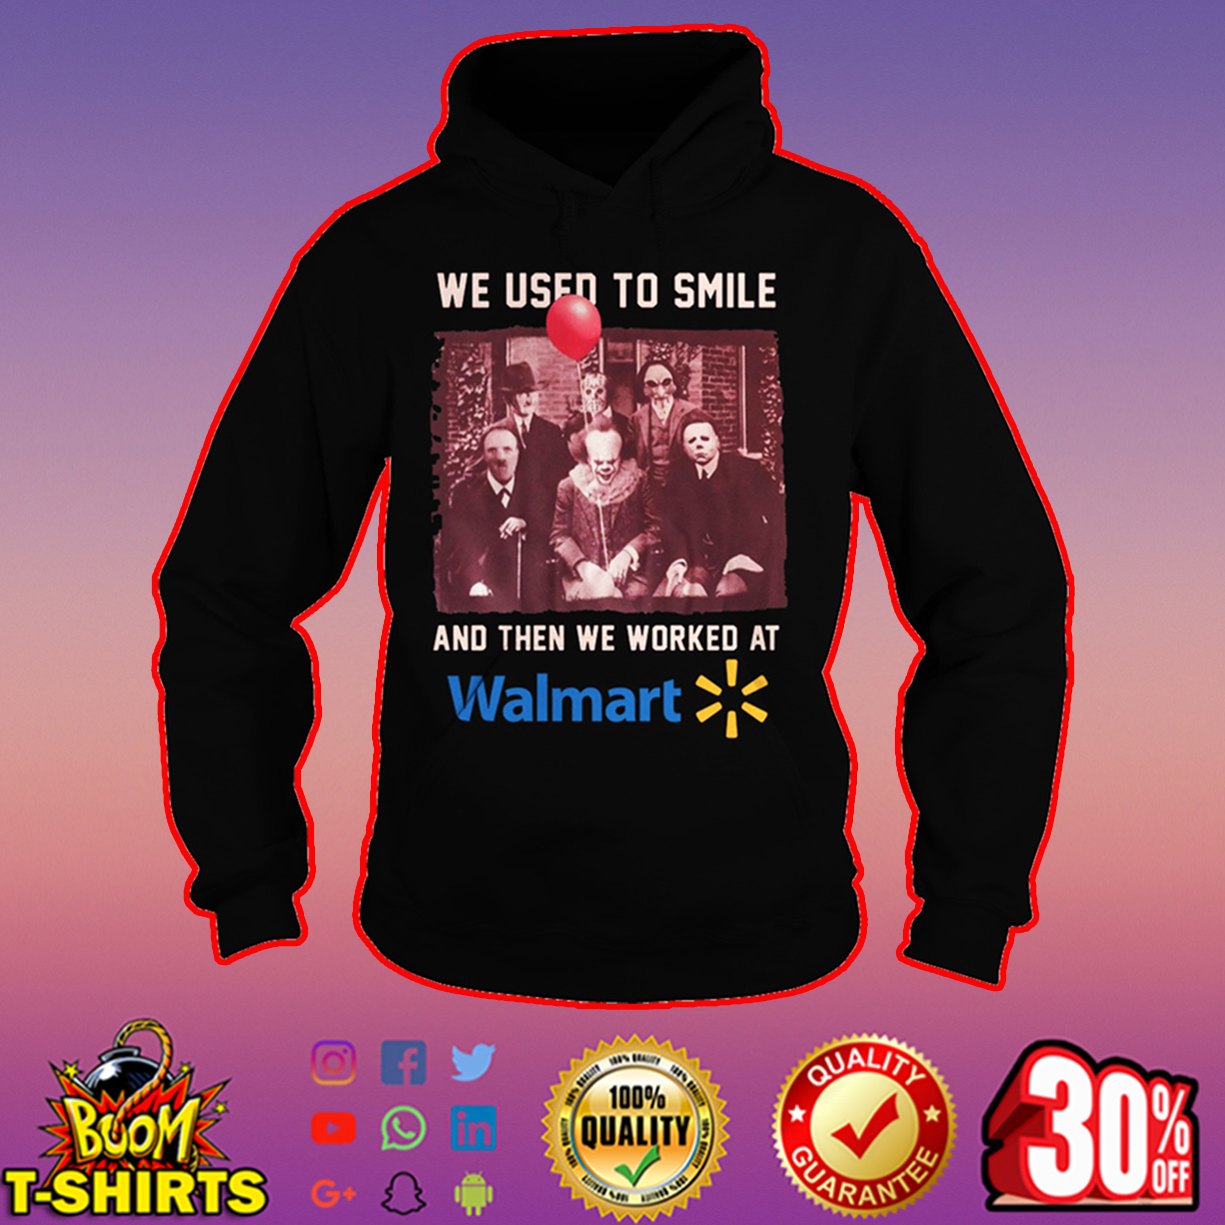 Walmart Pennywise Hannibal Lecter Michael Myers Freddy Krueger Jason Voorhees Billy we used to smile hoodie